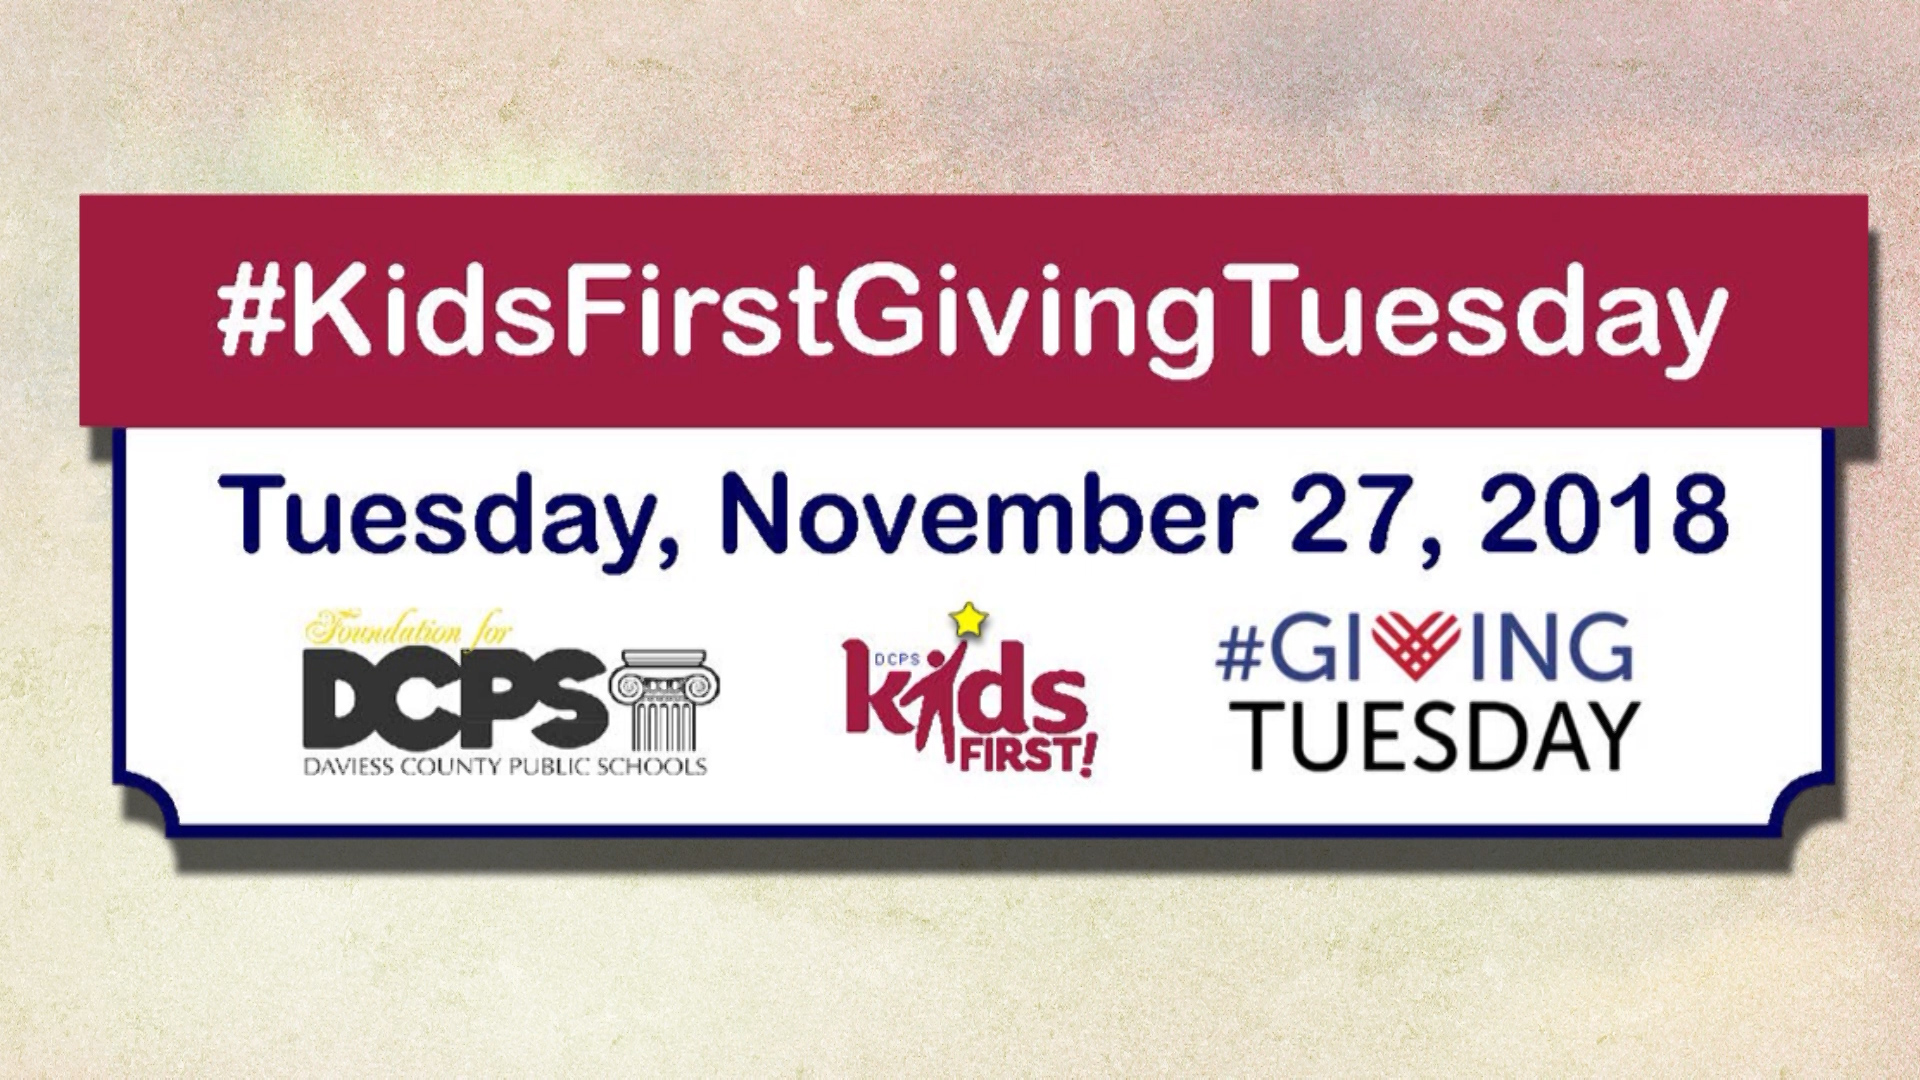 Giving Tuesday - #KidsFirstGivingTuesday November 27, 2018